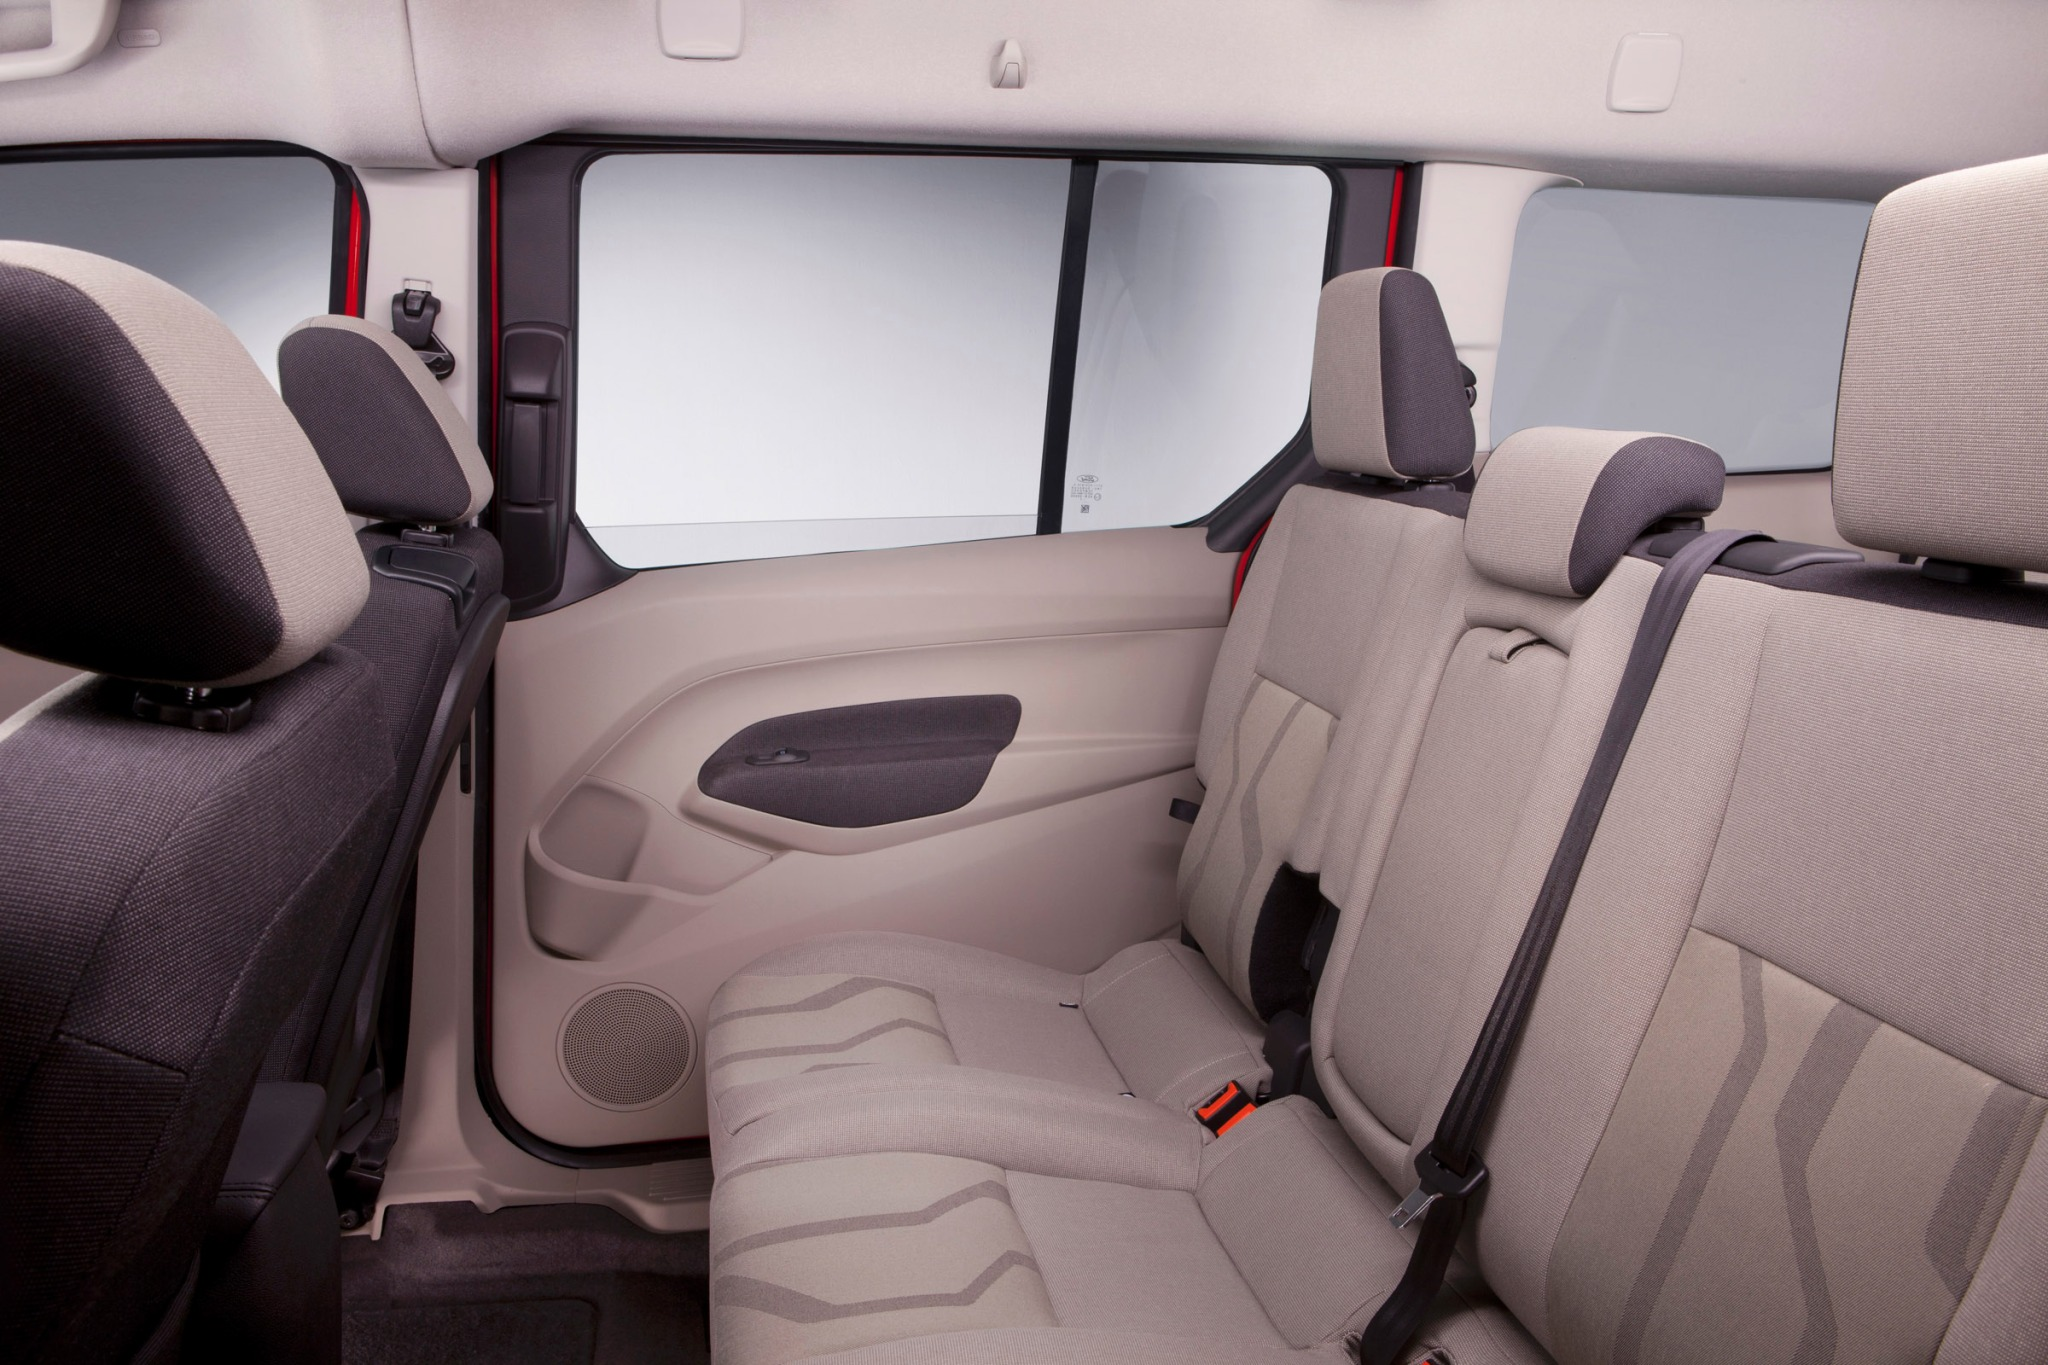 2014 Ford Transit Connect interior #8